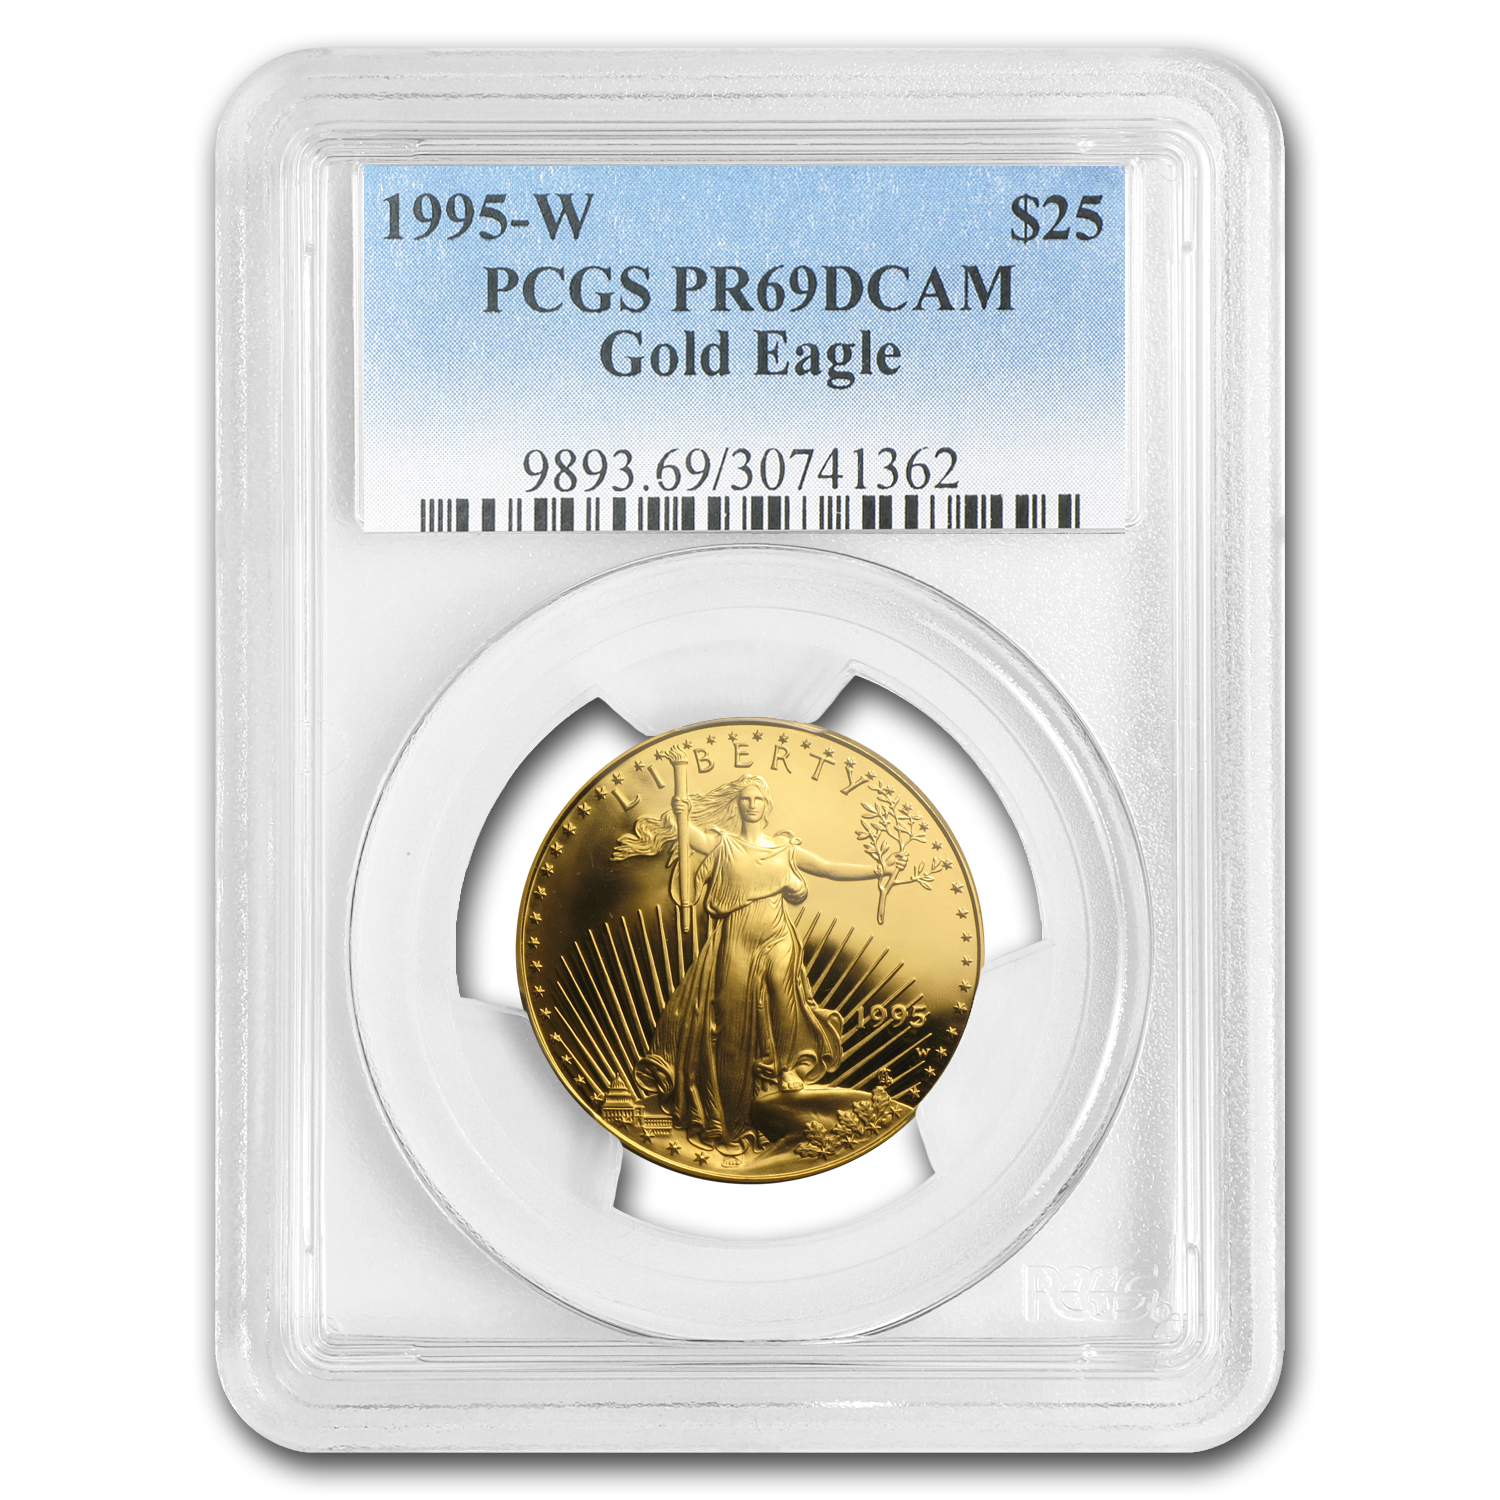 1995-W 1/2 oz Proof Gold American Eagle PR-69 PCGS